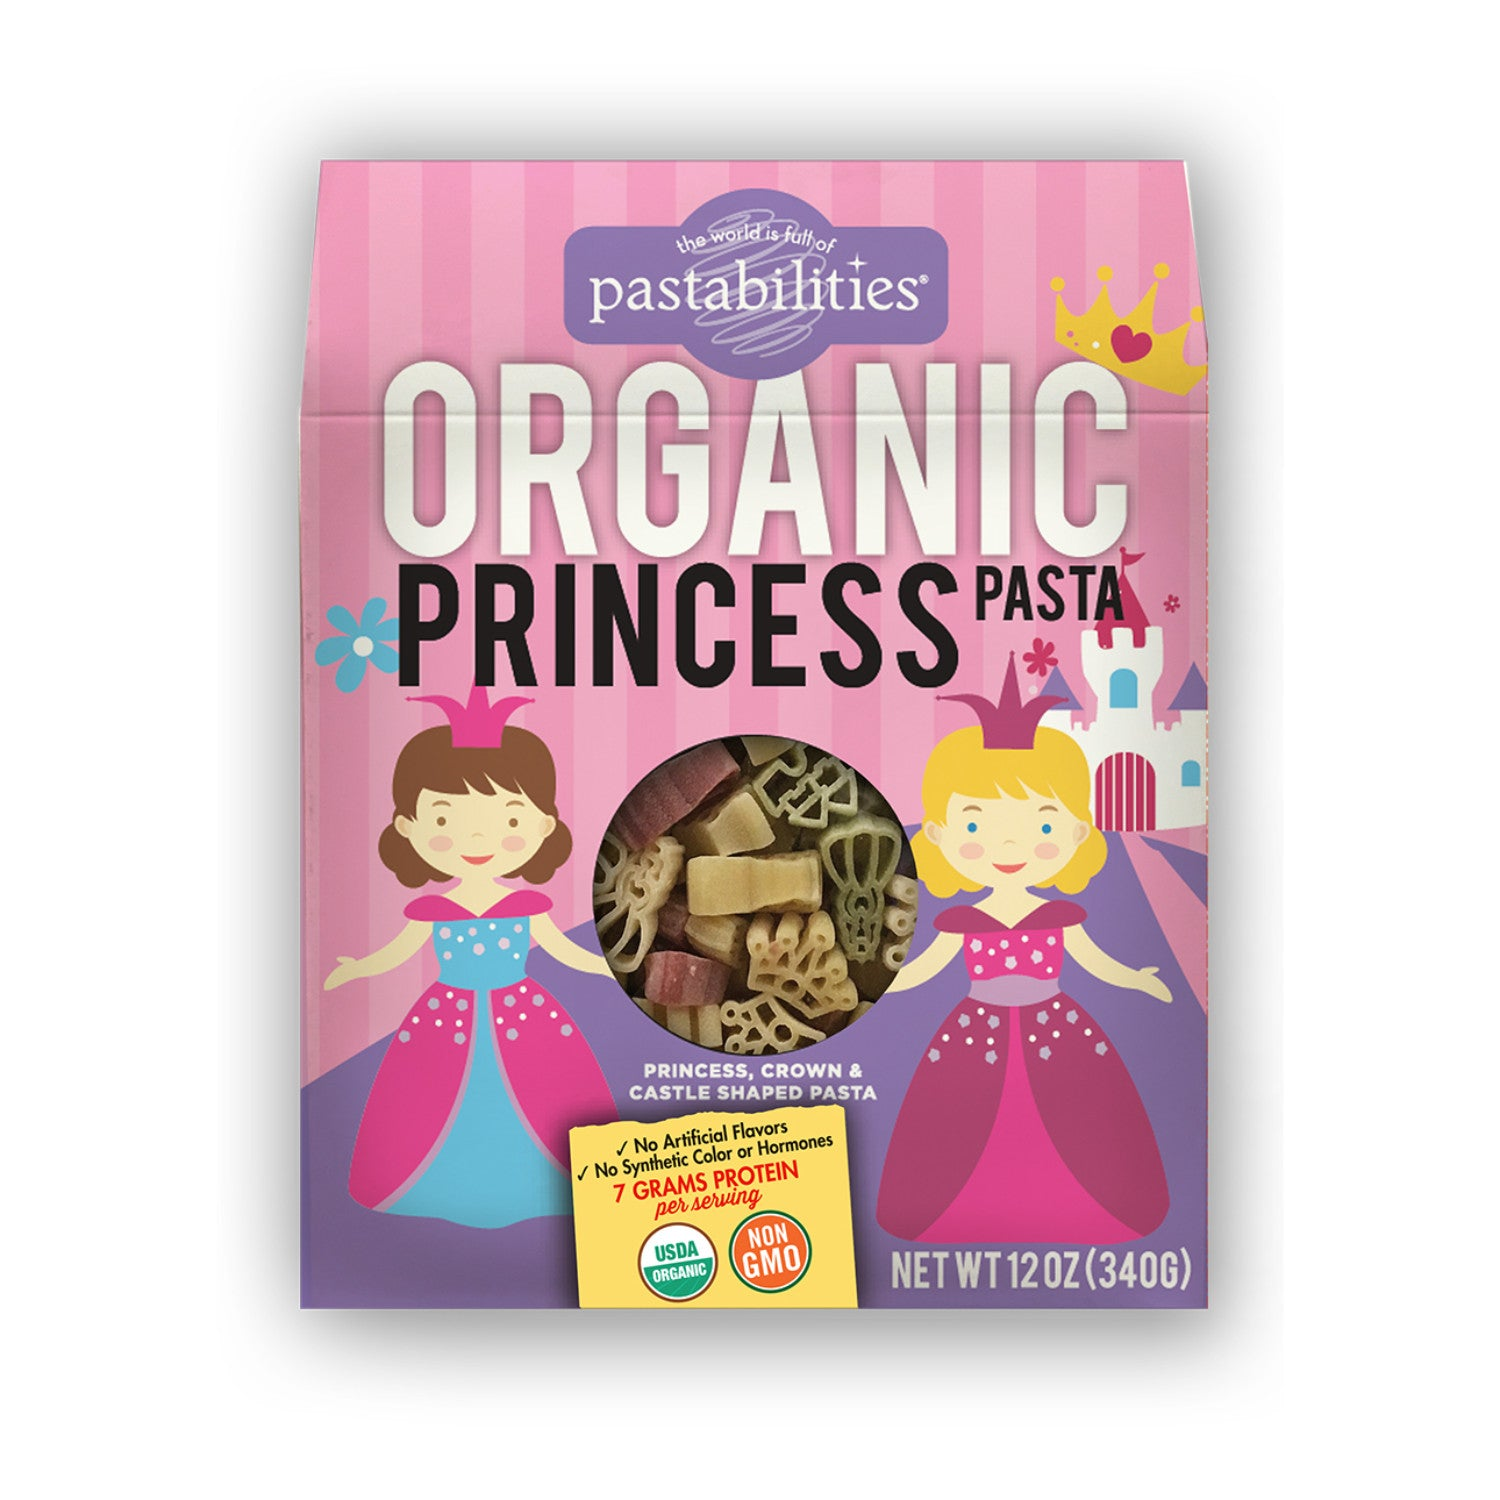 Pastabilities Organic Princess Shaped Pasta, 340g-NaturesWisdom